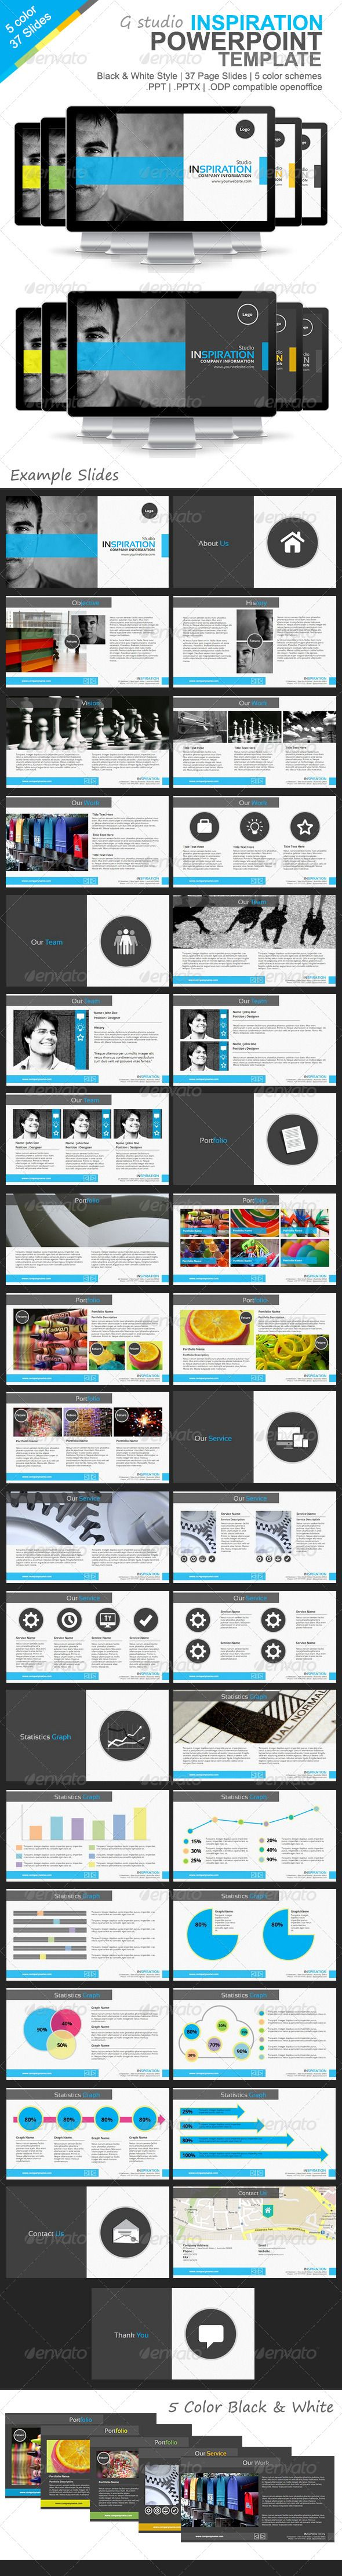 Gstudio Inspiration Powerpoint Template - Presentation Templates